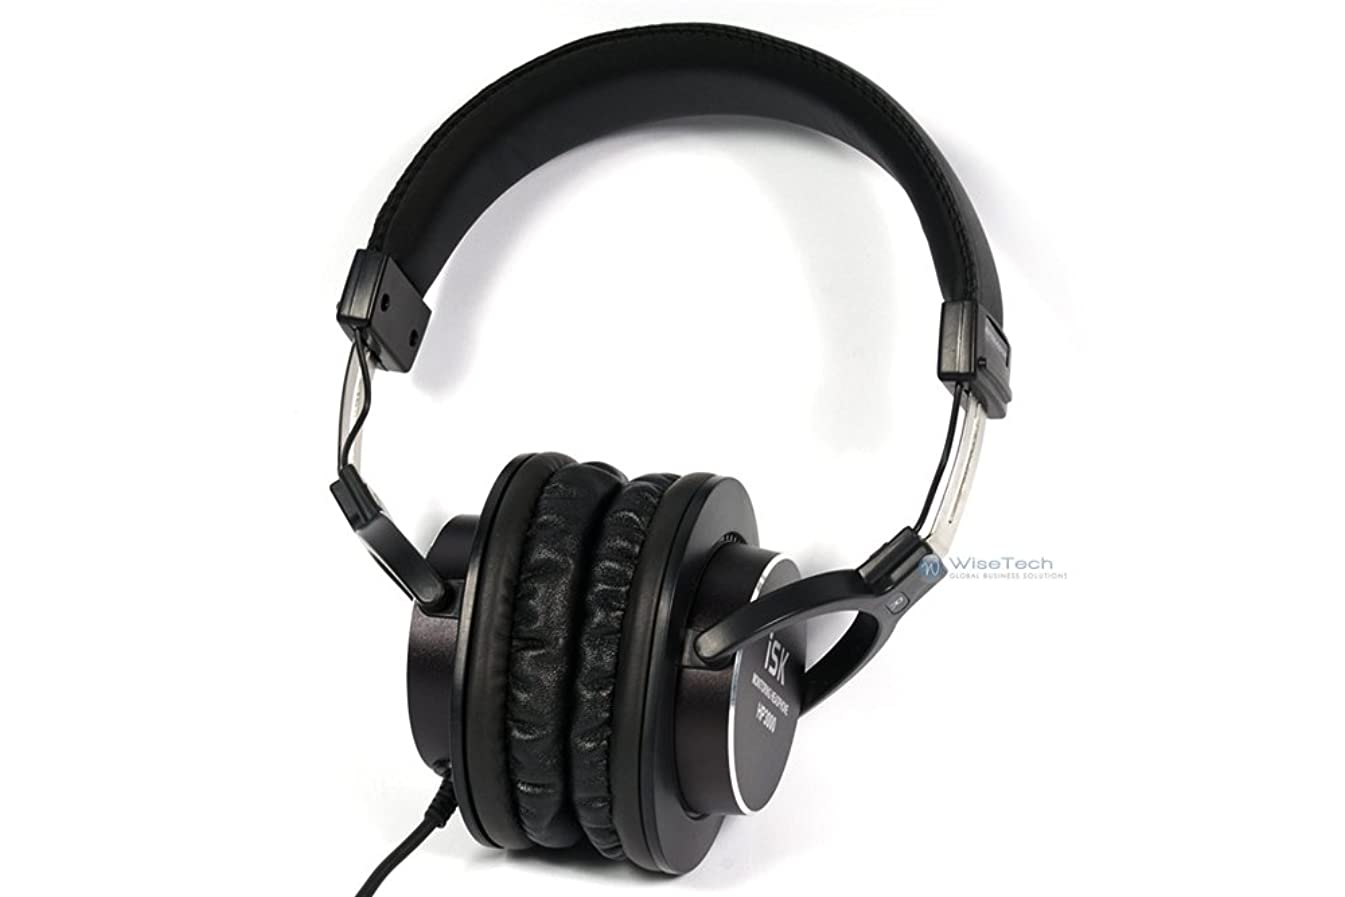 船ドームポテトiSK PROFESSIONAL HI-FI HEADPHONE 黒 HP-3000